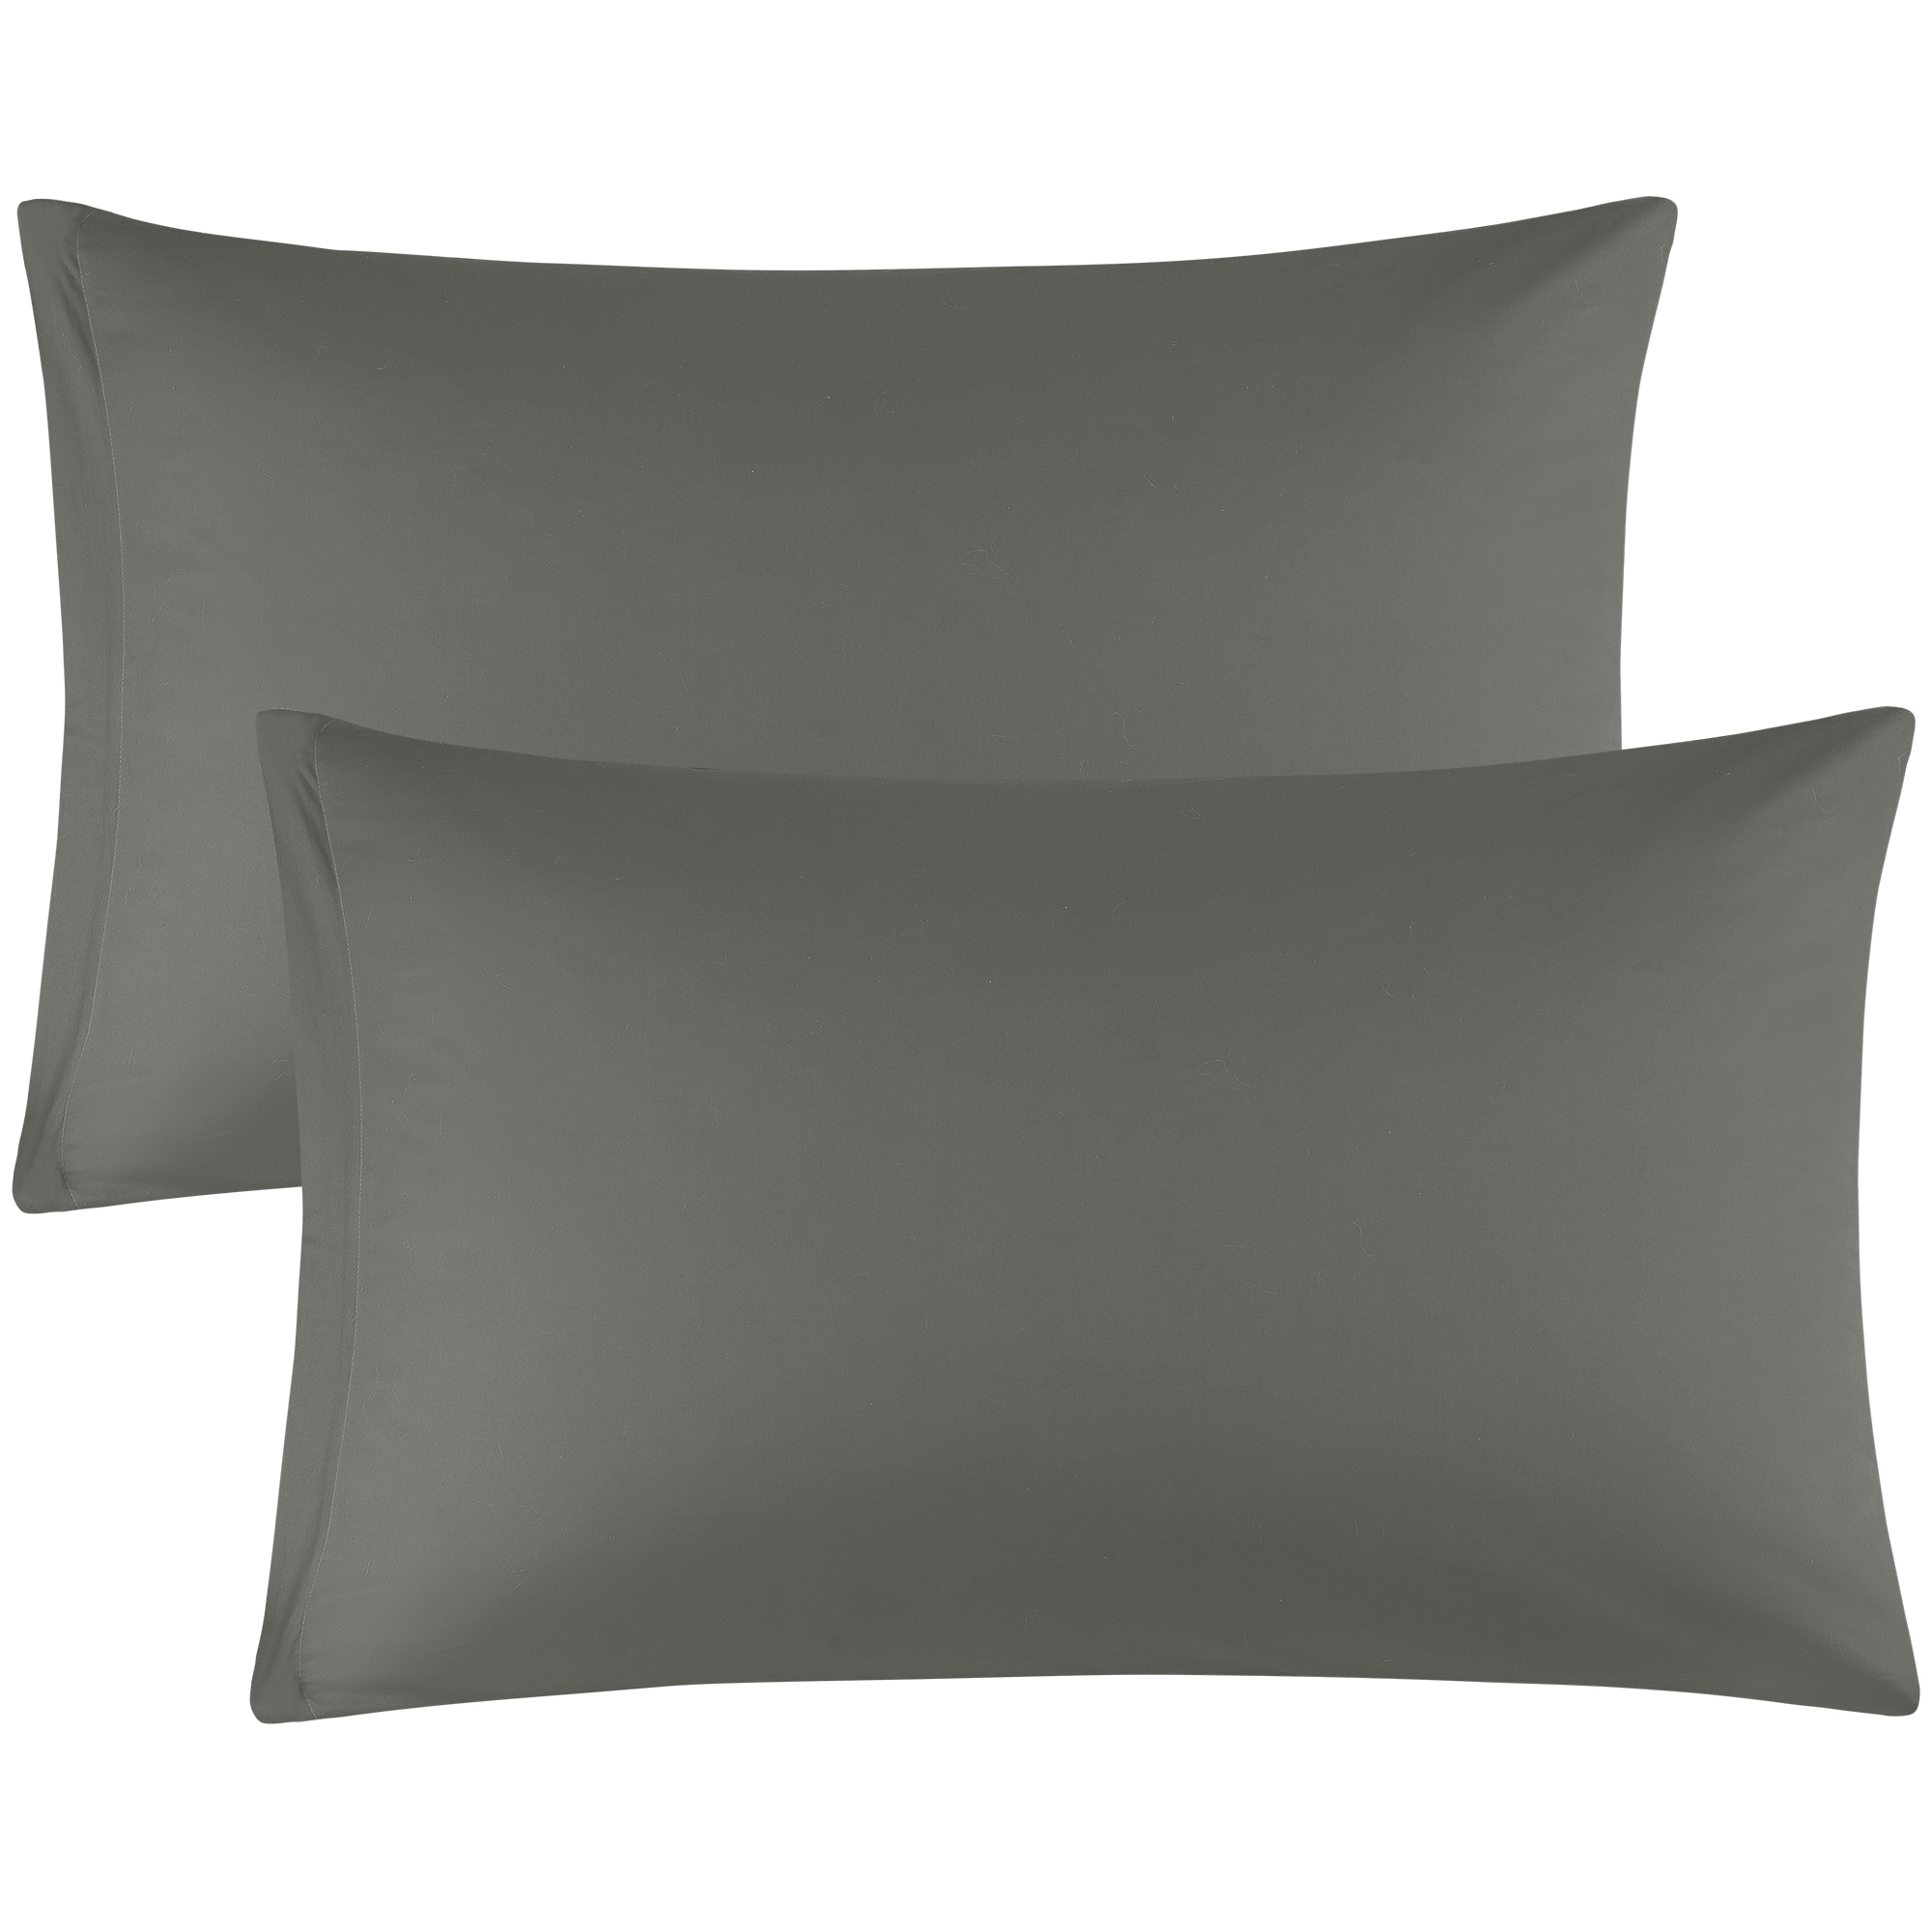 Zippered Pillowcases Covers Egyptian Cotton 2-Pack (20 x 36 Inch, Dark Gray)